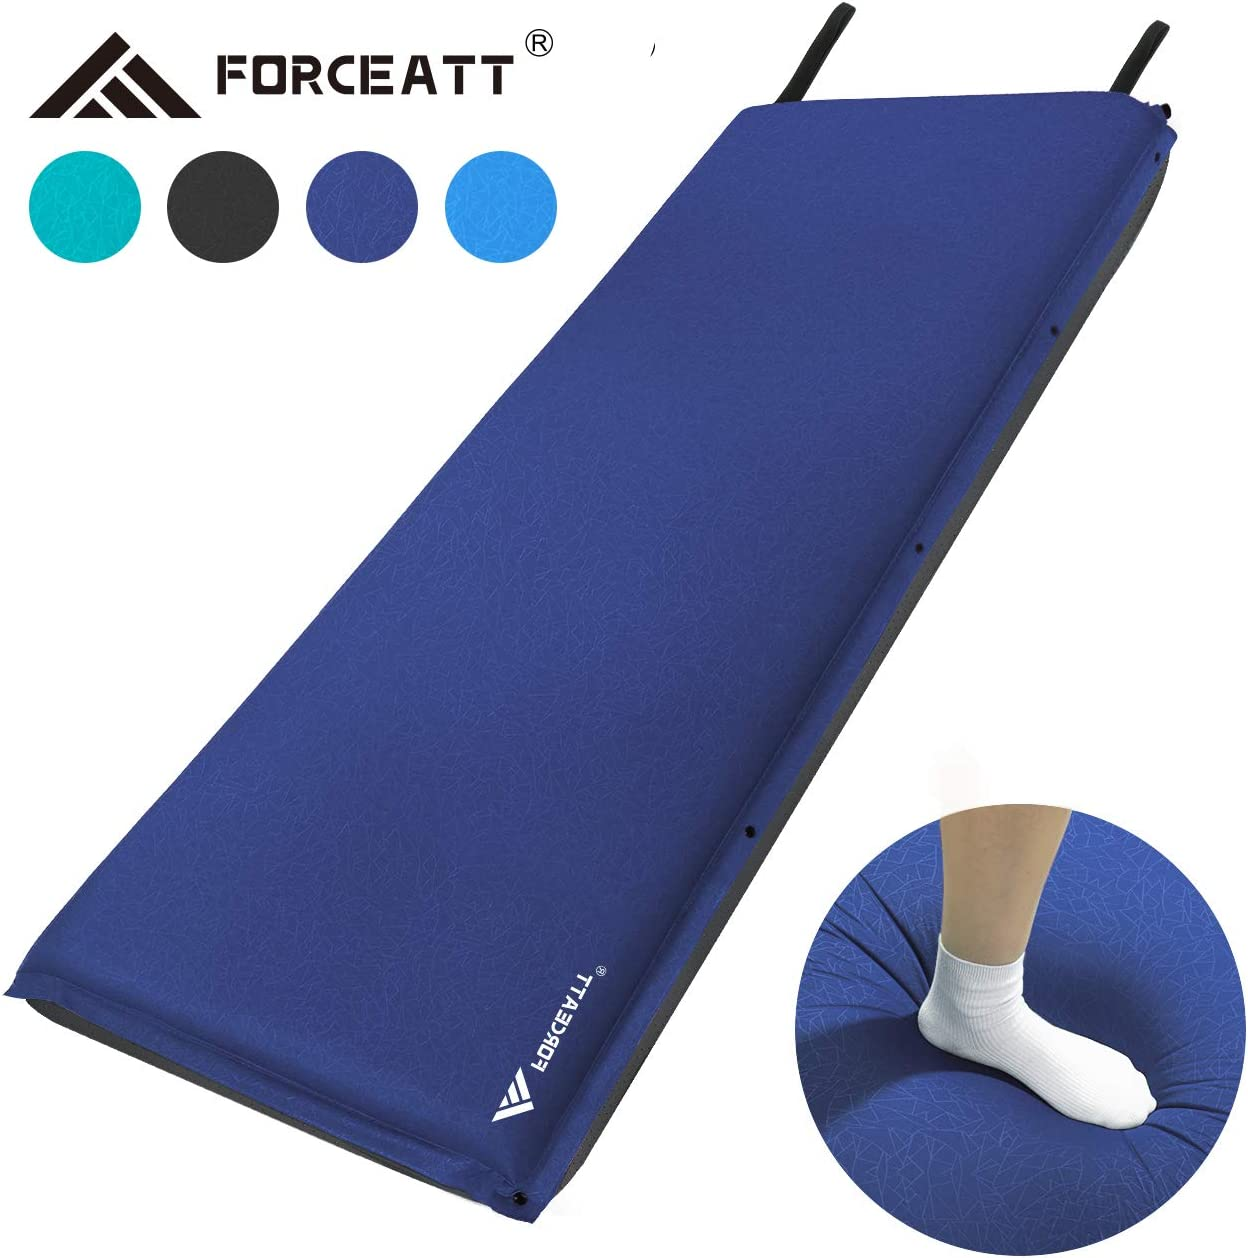 Forceatt Camping Sleeping Pad, 2 and 3.2 Inches- Thick Self Inflating Lightweight Camping Pad and Non-Slip Particles on The Back Ideal for Backpacking and Camping